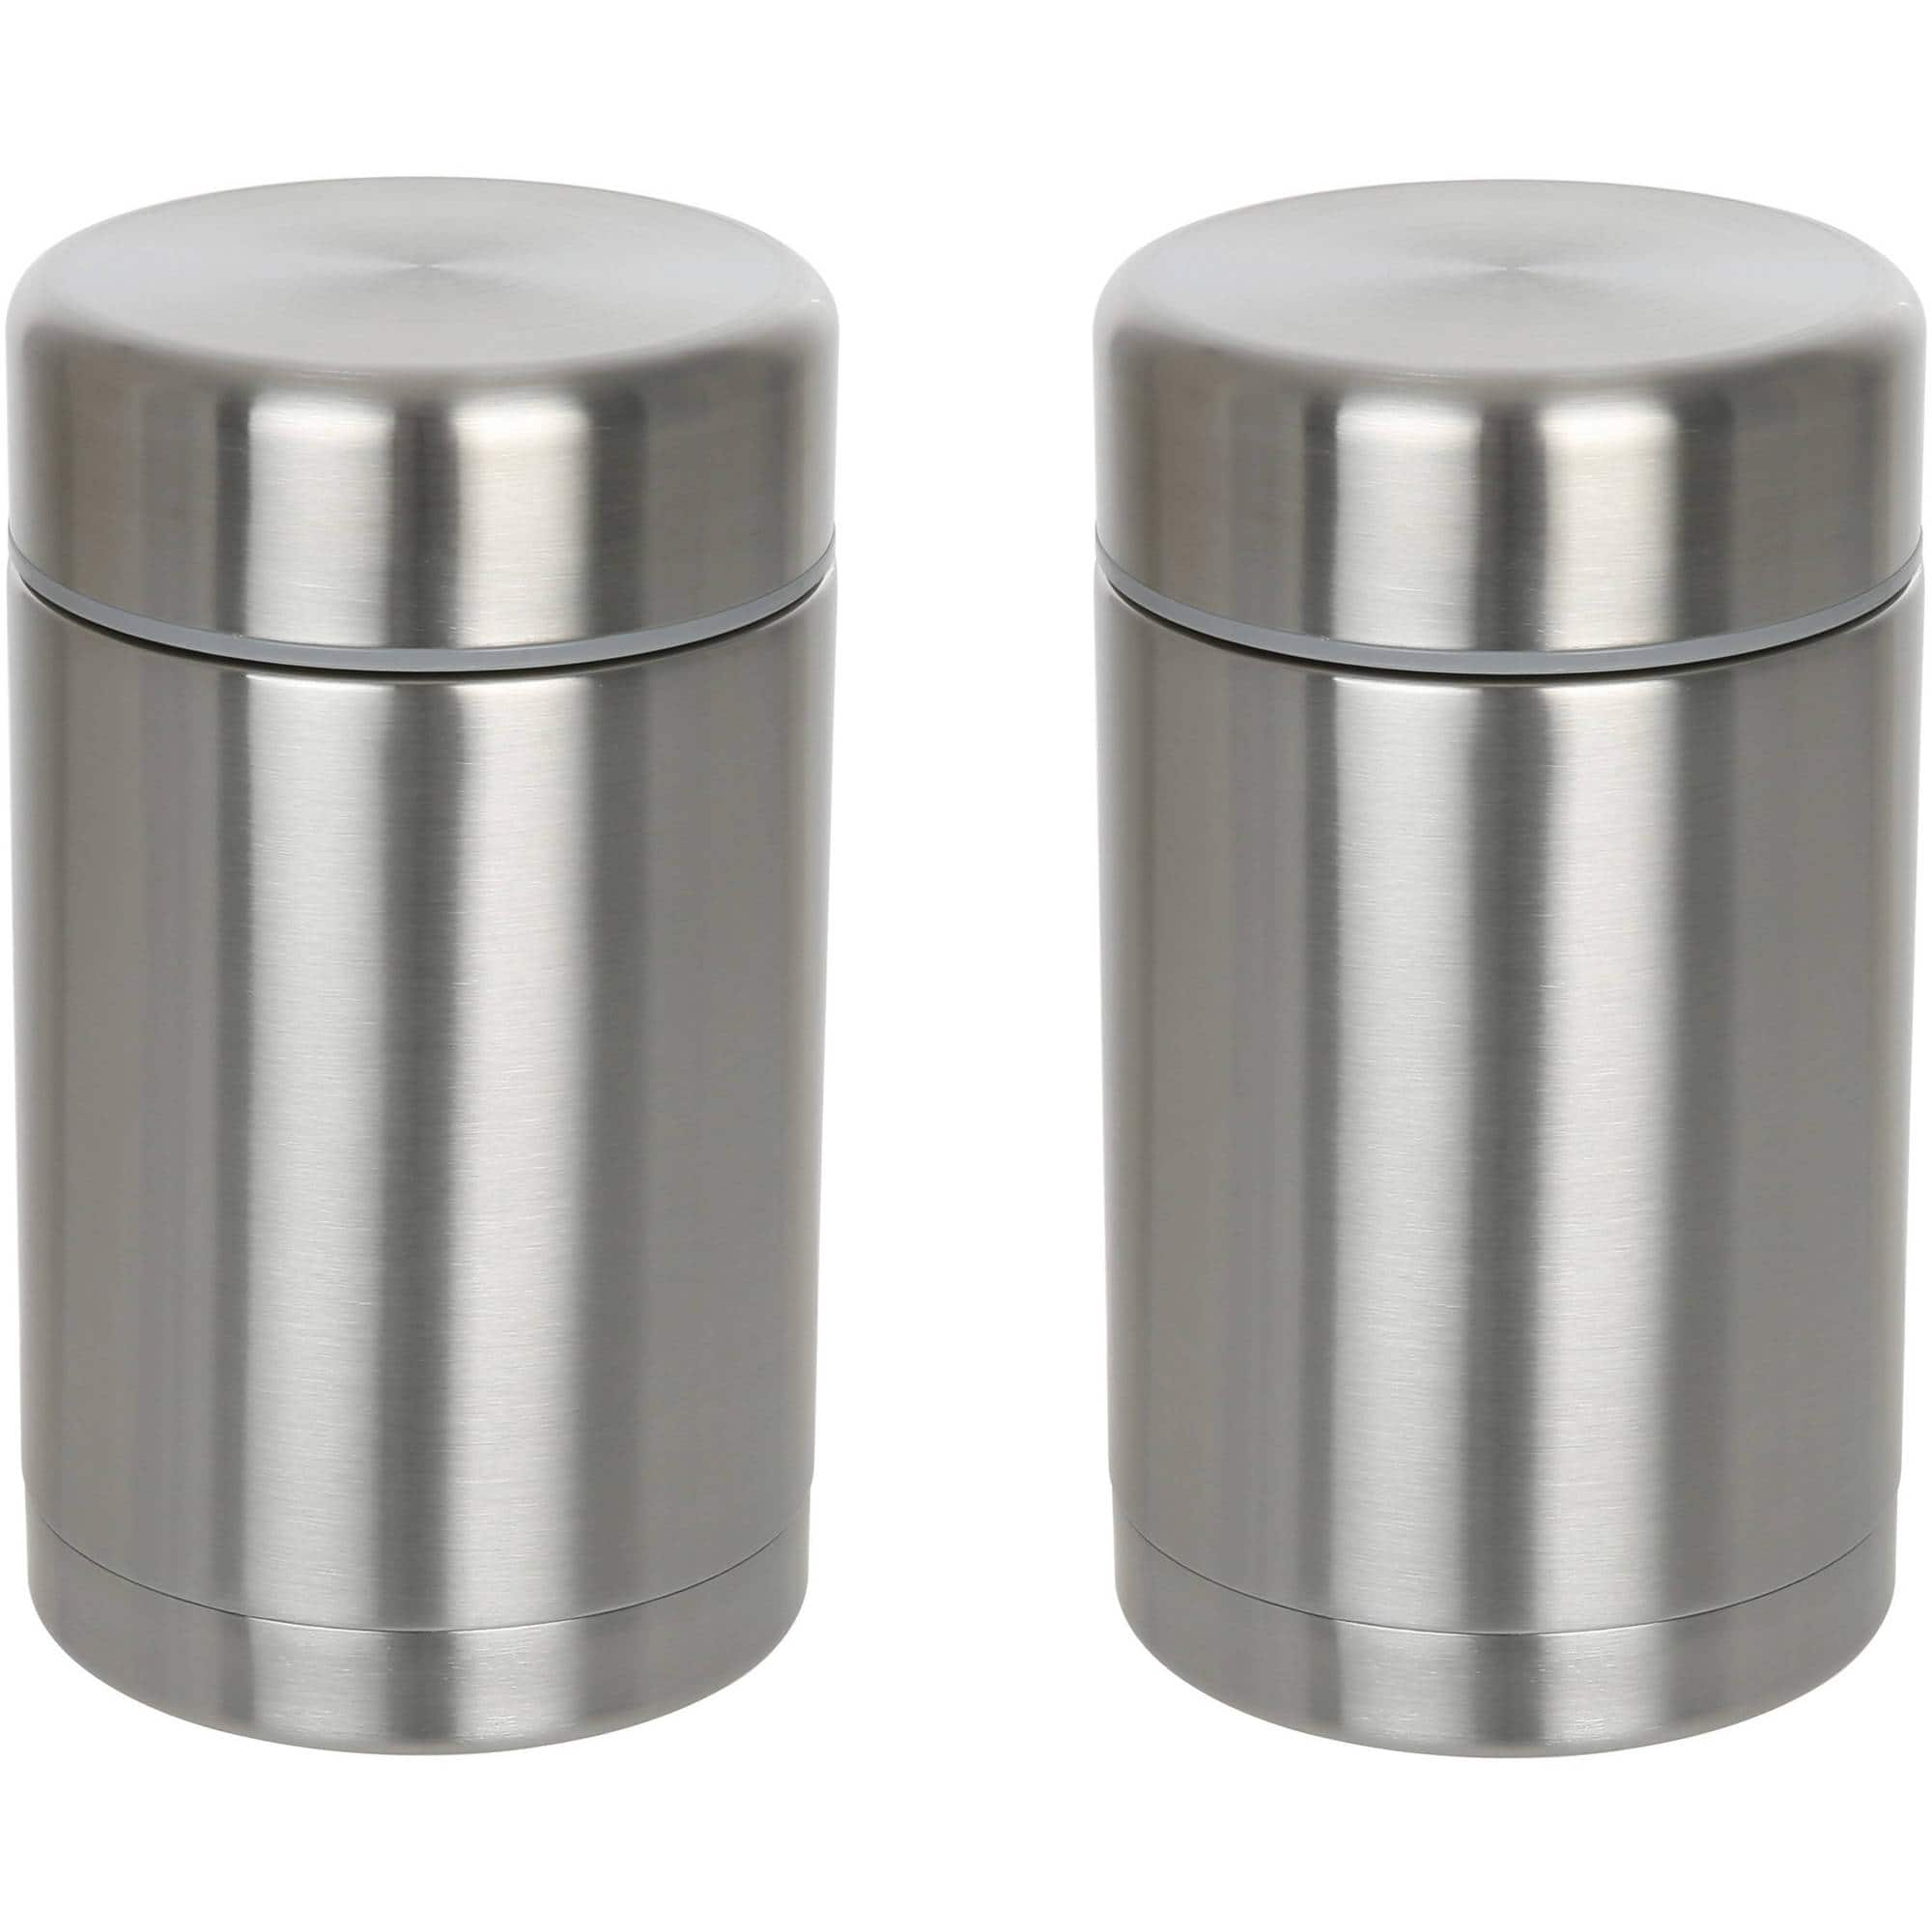 2-Pack Penguin Brand 18/10 Stainless Steel Insulated Food